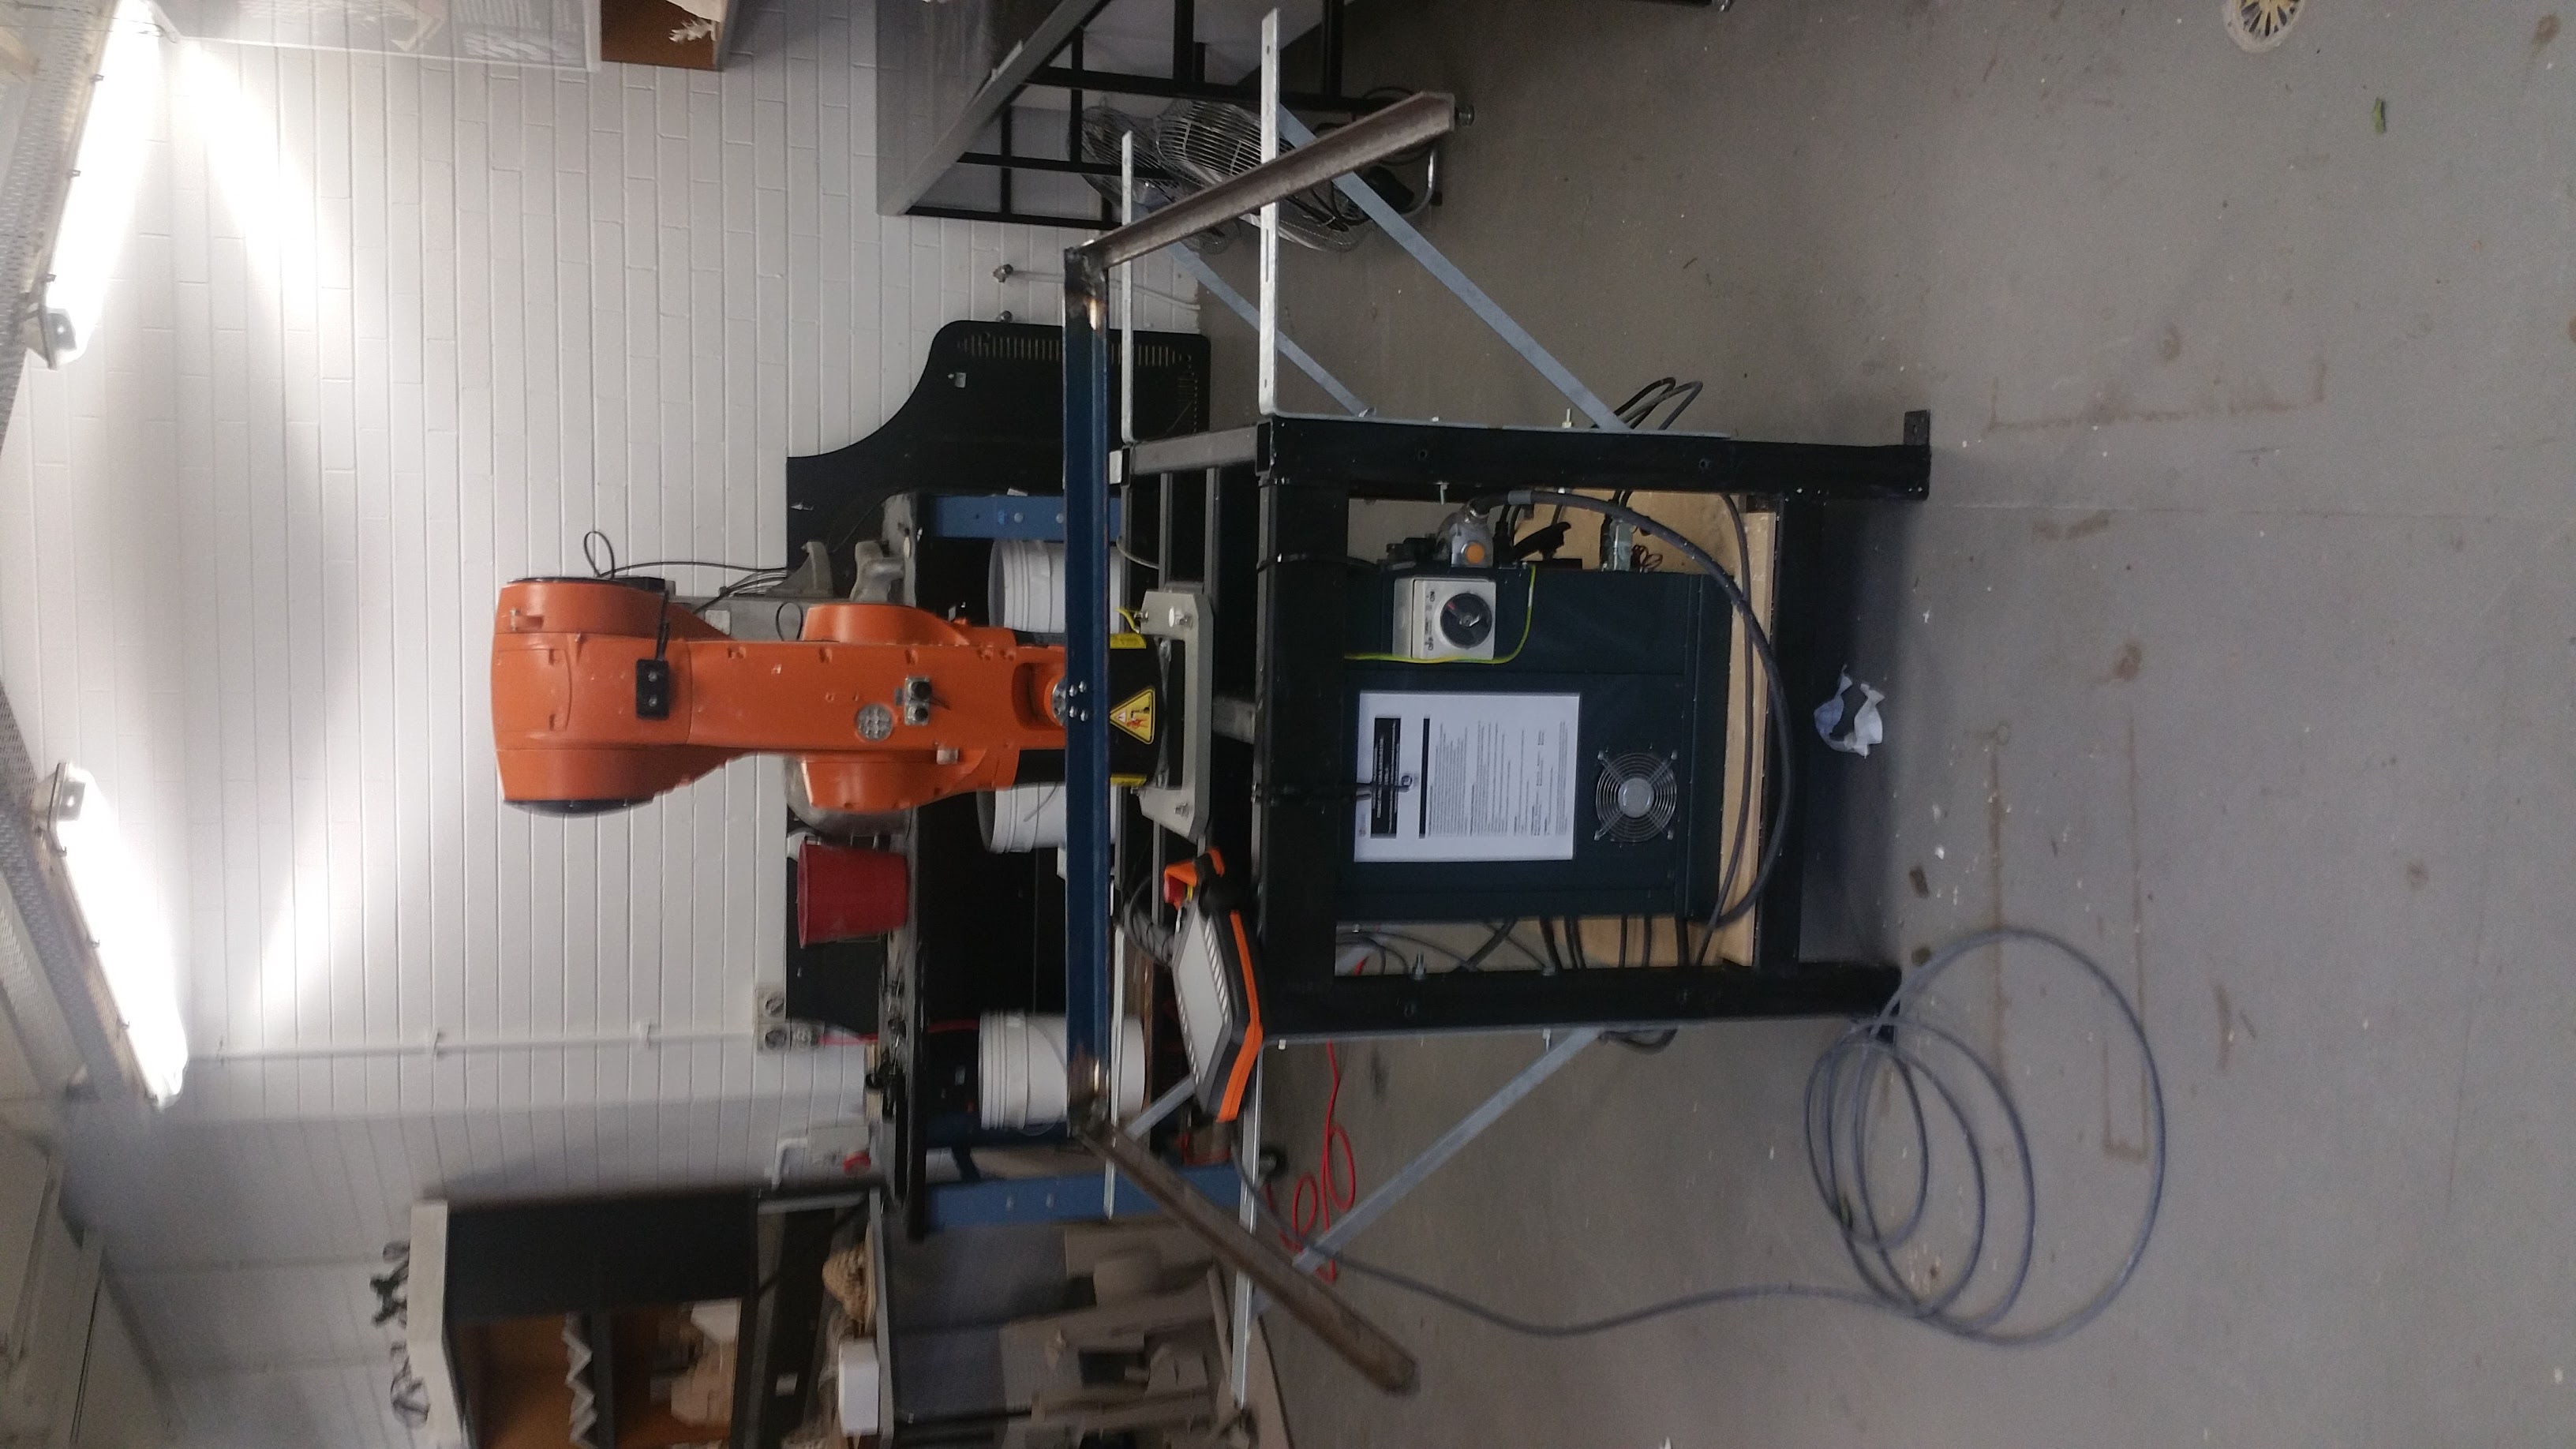 KUKA robot with wire cutter attachment